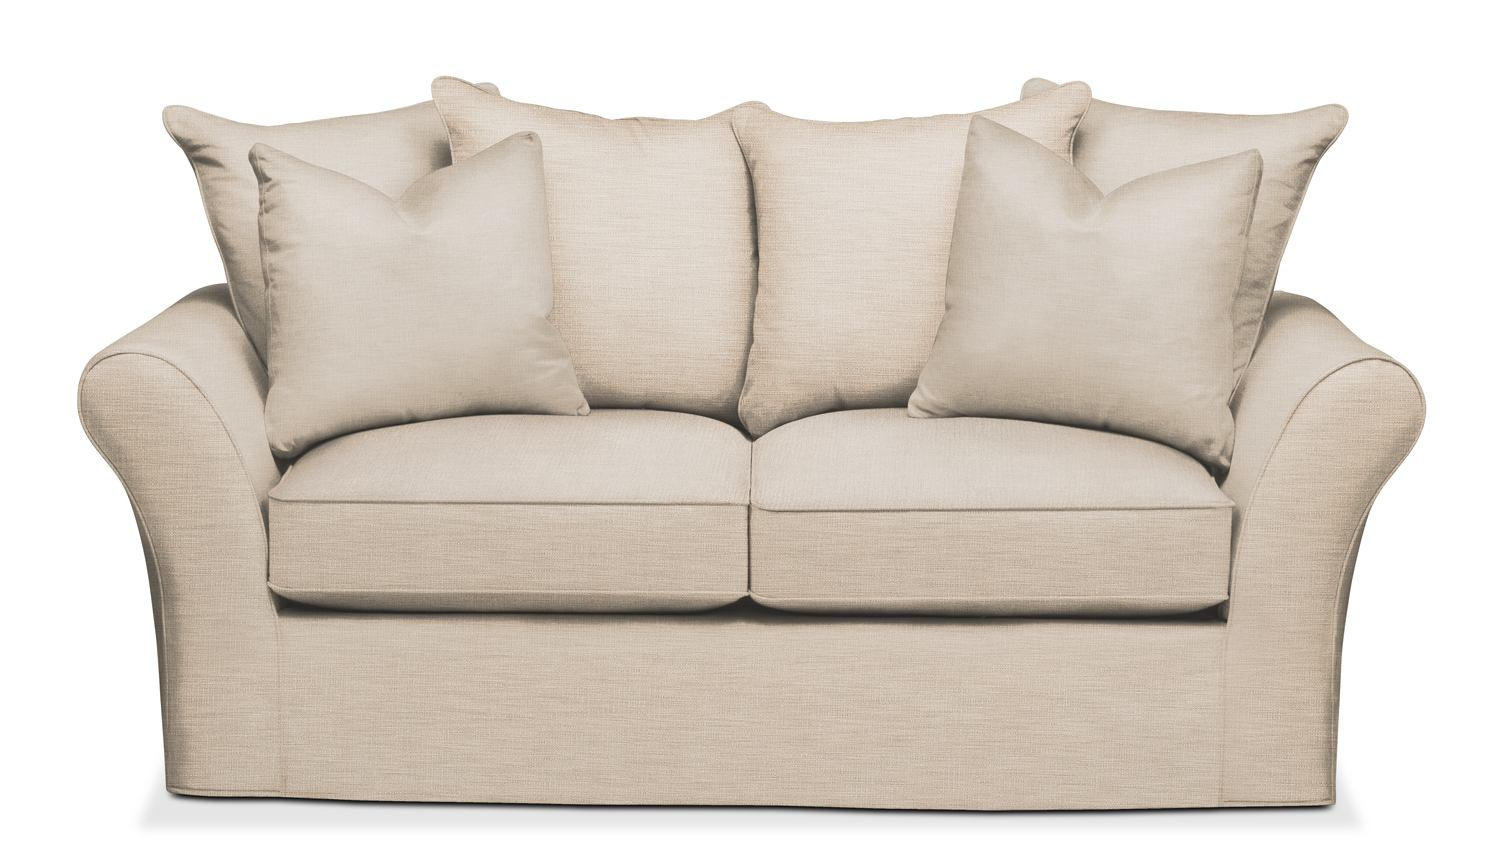 Allison Apartment Sofa  Cumulus In Victory Ivory By Kroehler